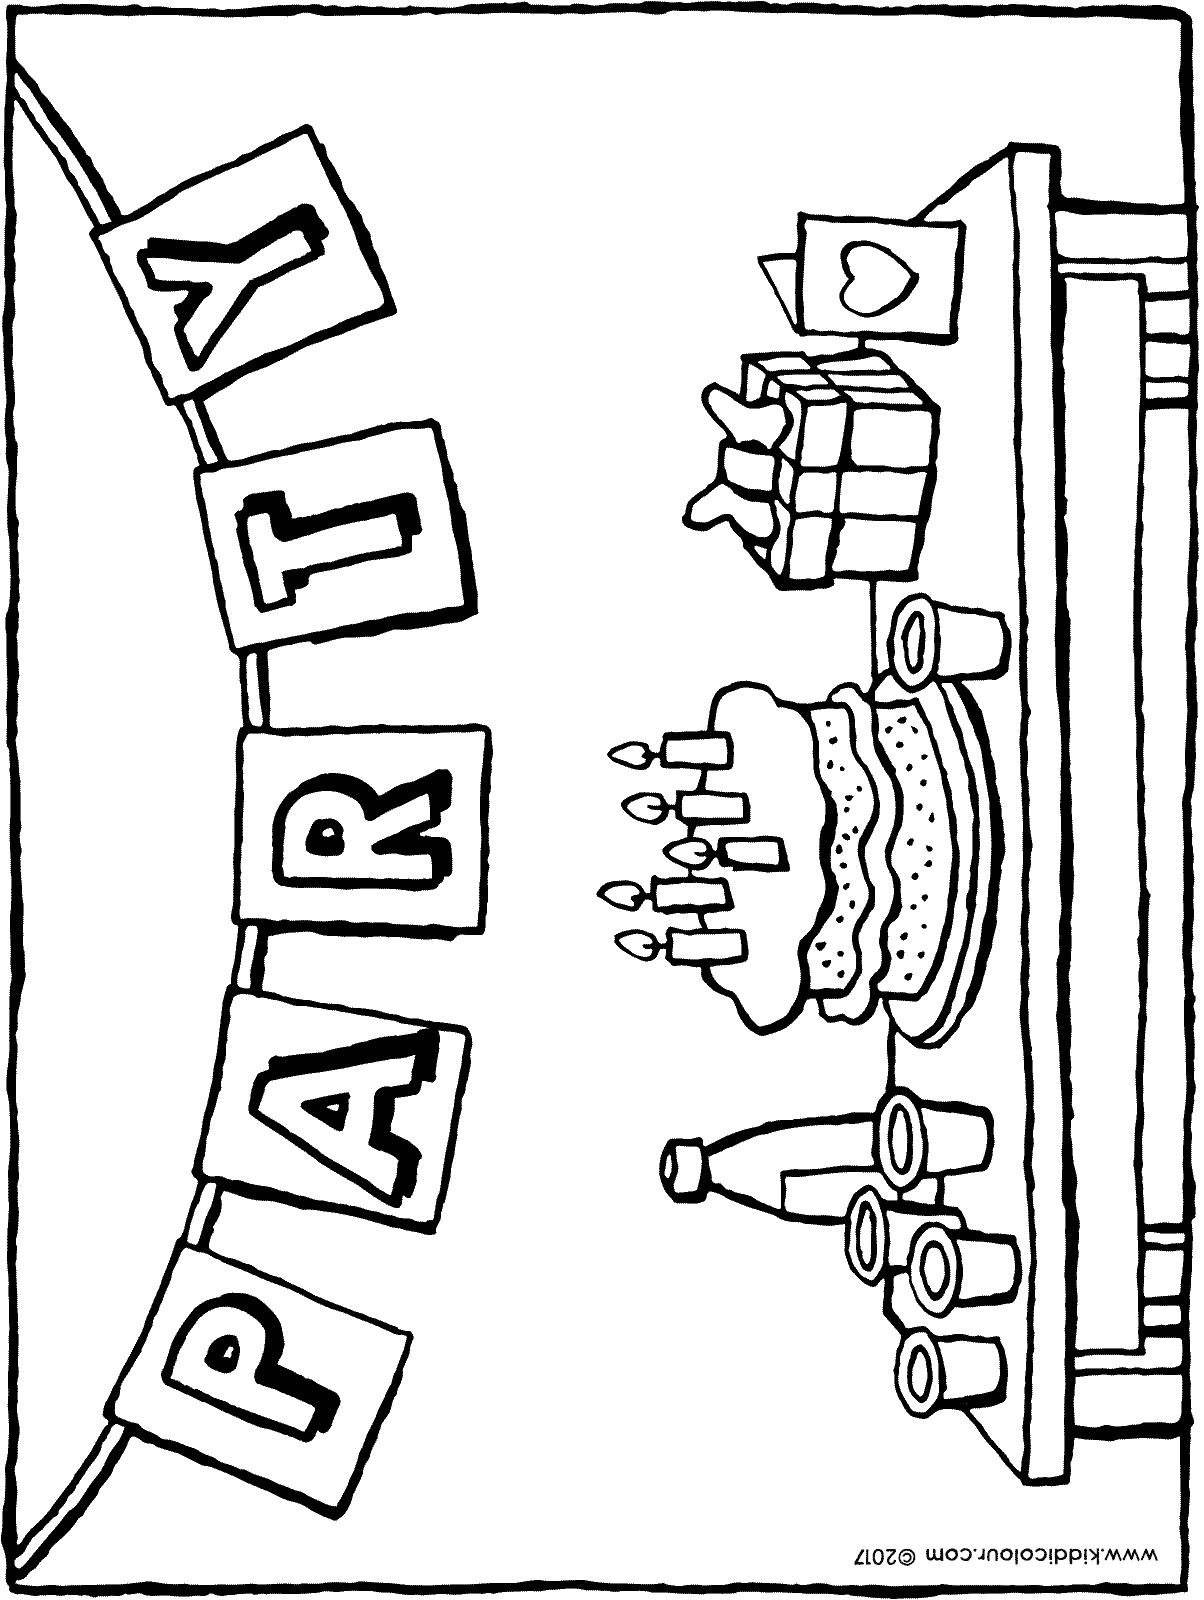 birthday party drawing ; are-you-coming-to-my-birthday-party-colouring-page-01H